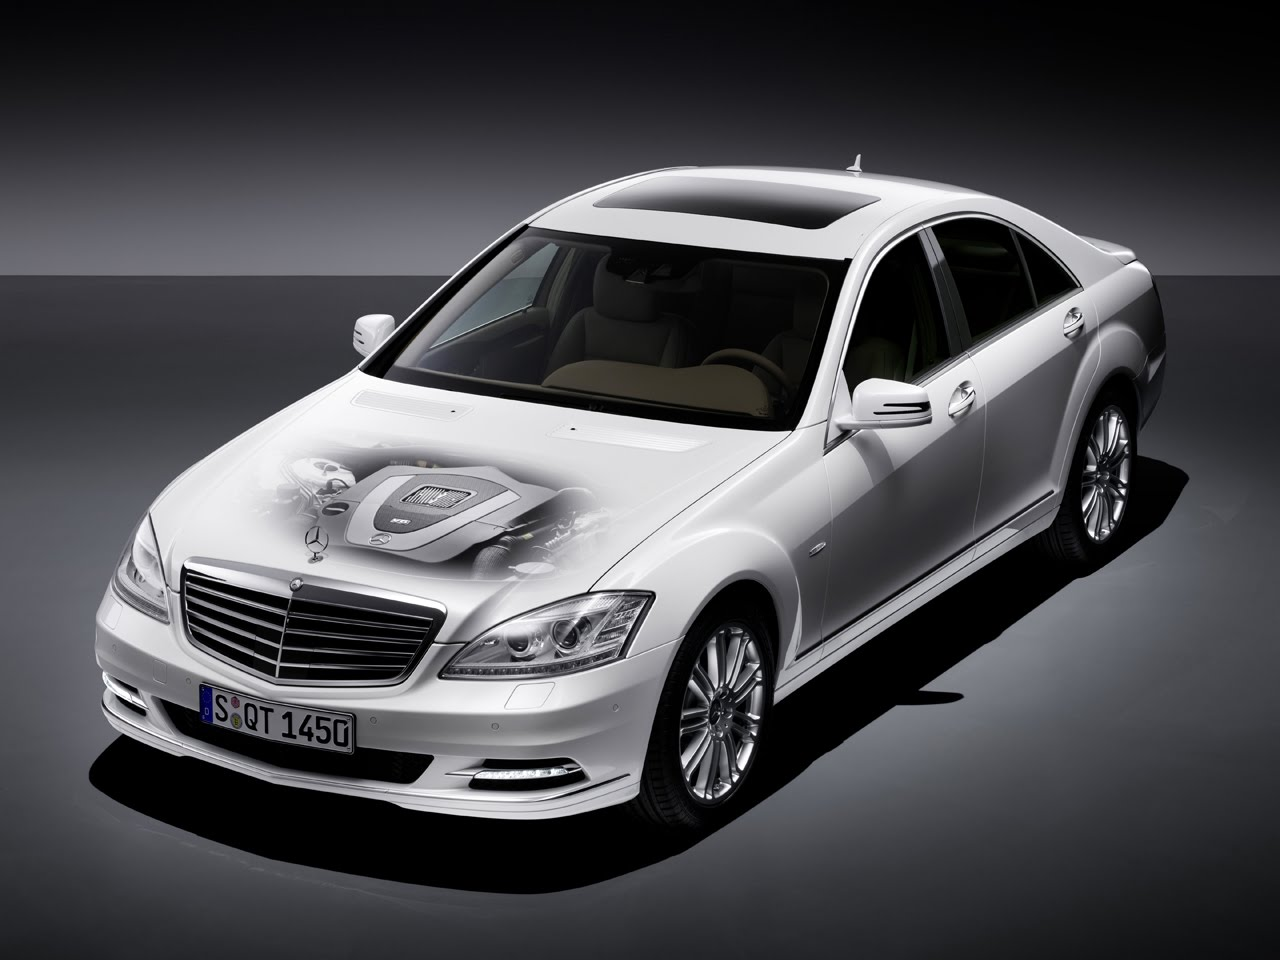 2012 new mercedes benz s400 hybrid car pictures car for Hybrid mercedes benz